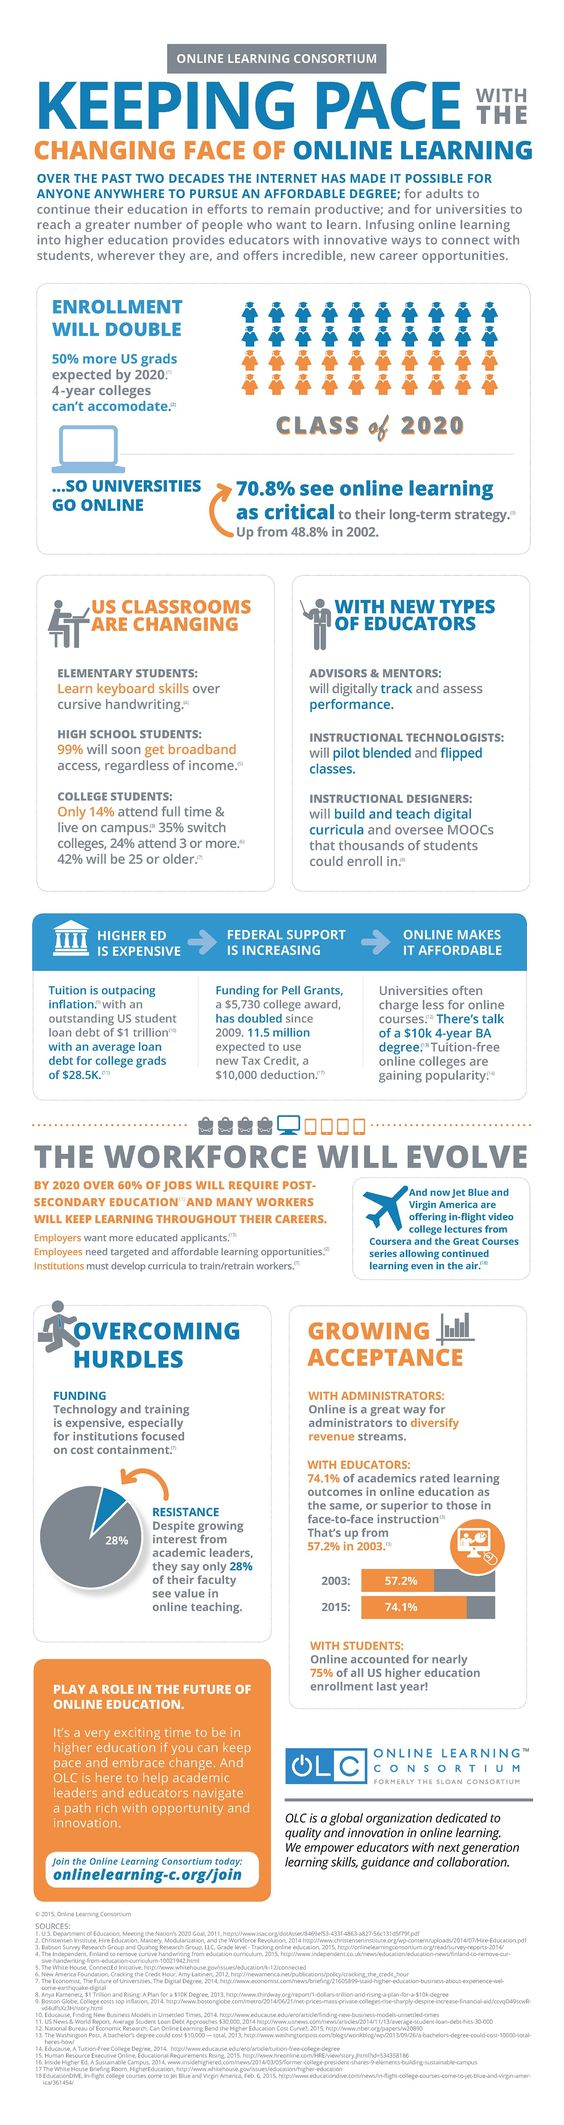 Technology and the Transformation of Education Infographic - http://elearninginfographics.com/technology-transformation-education-infographic-2/